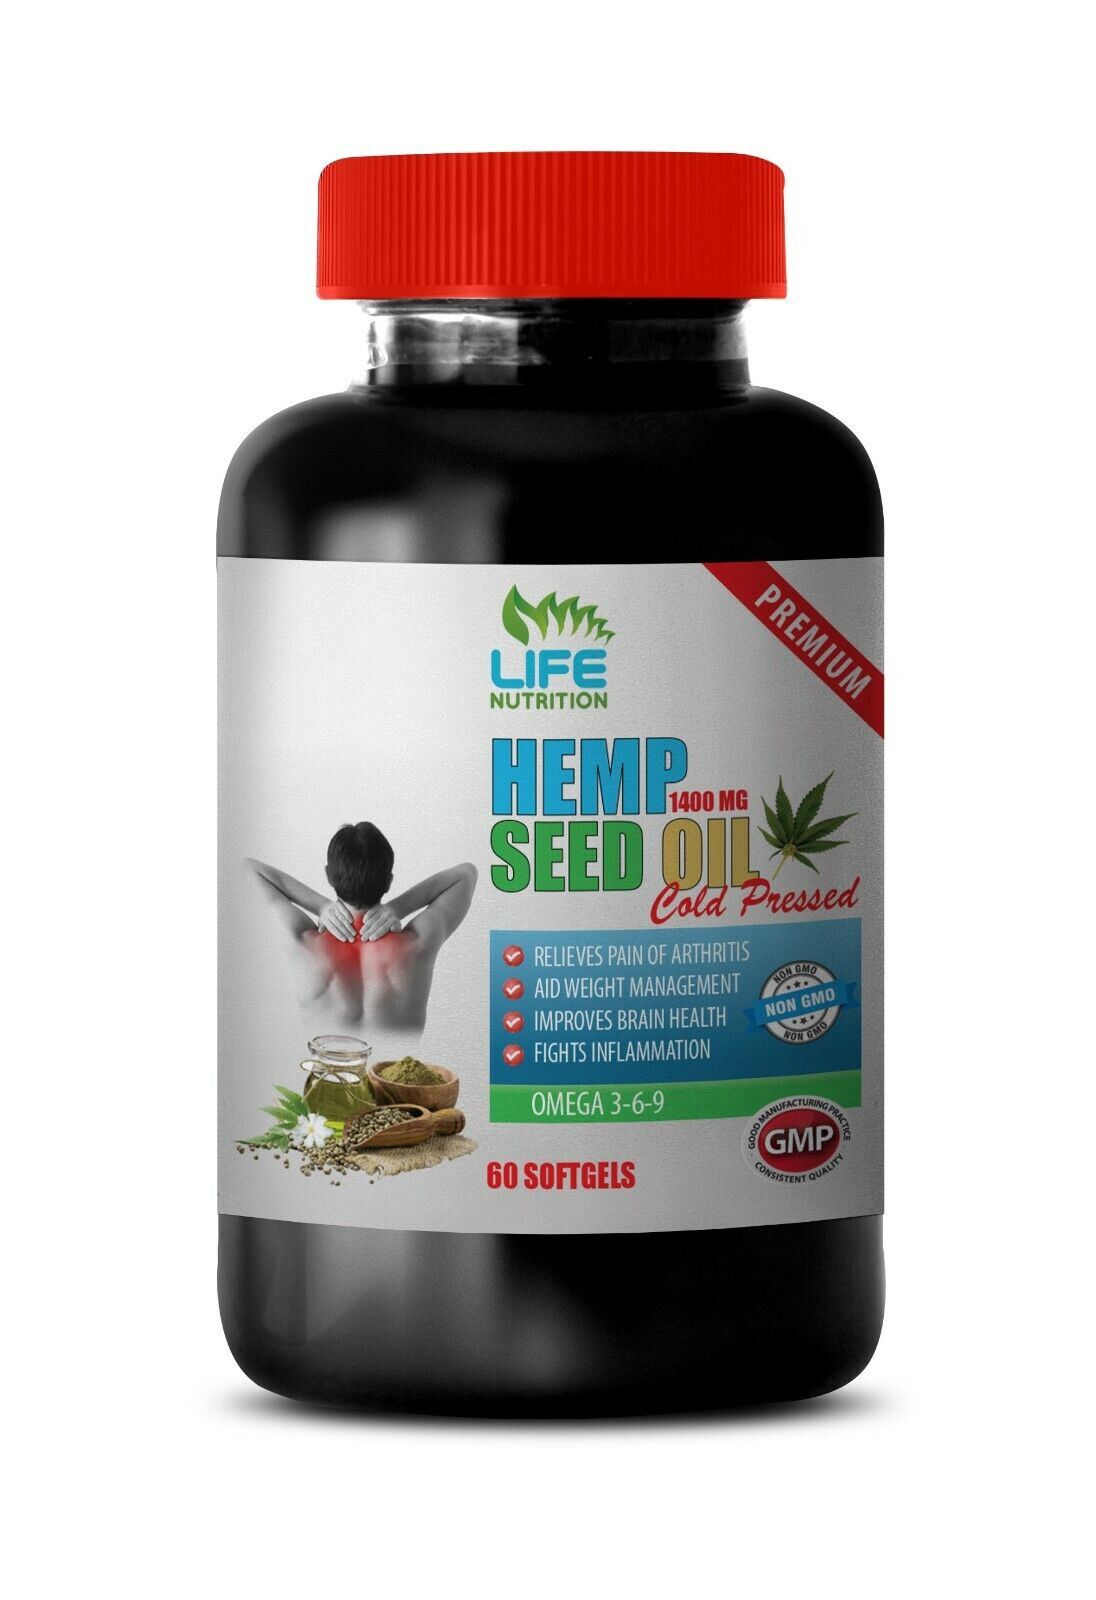 anti arthiritis supplement, ORGANIC HEMP SEED OIL 1400mg, anti aging skin care 1